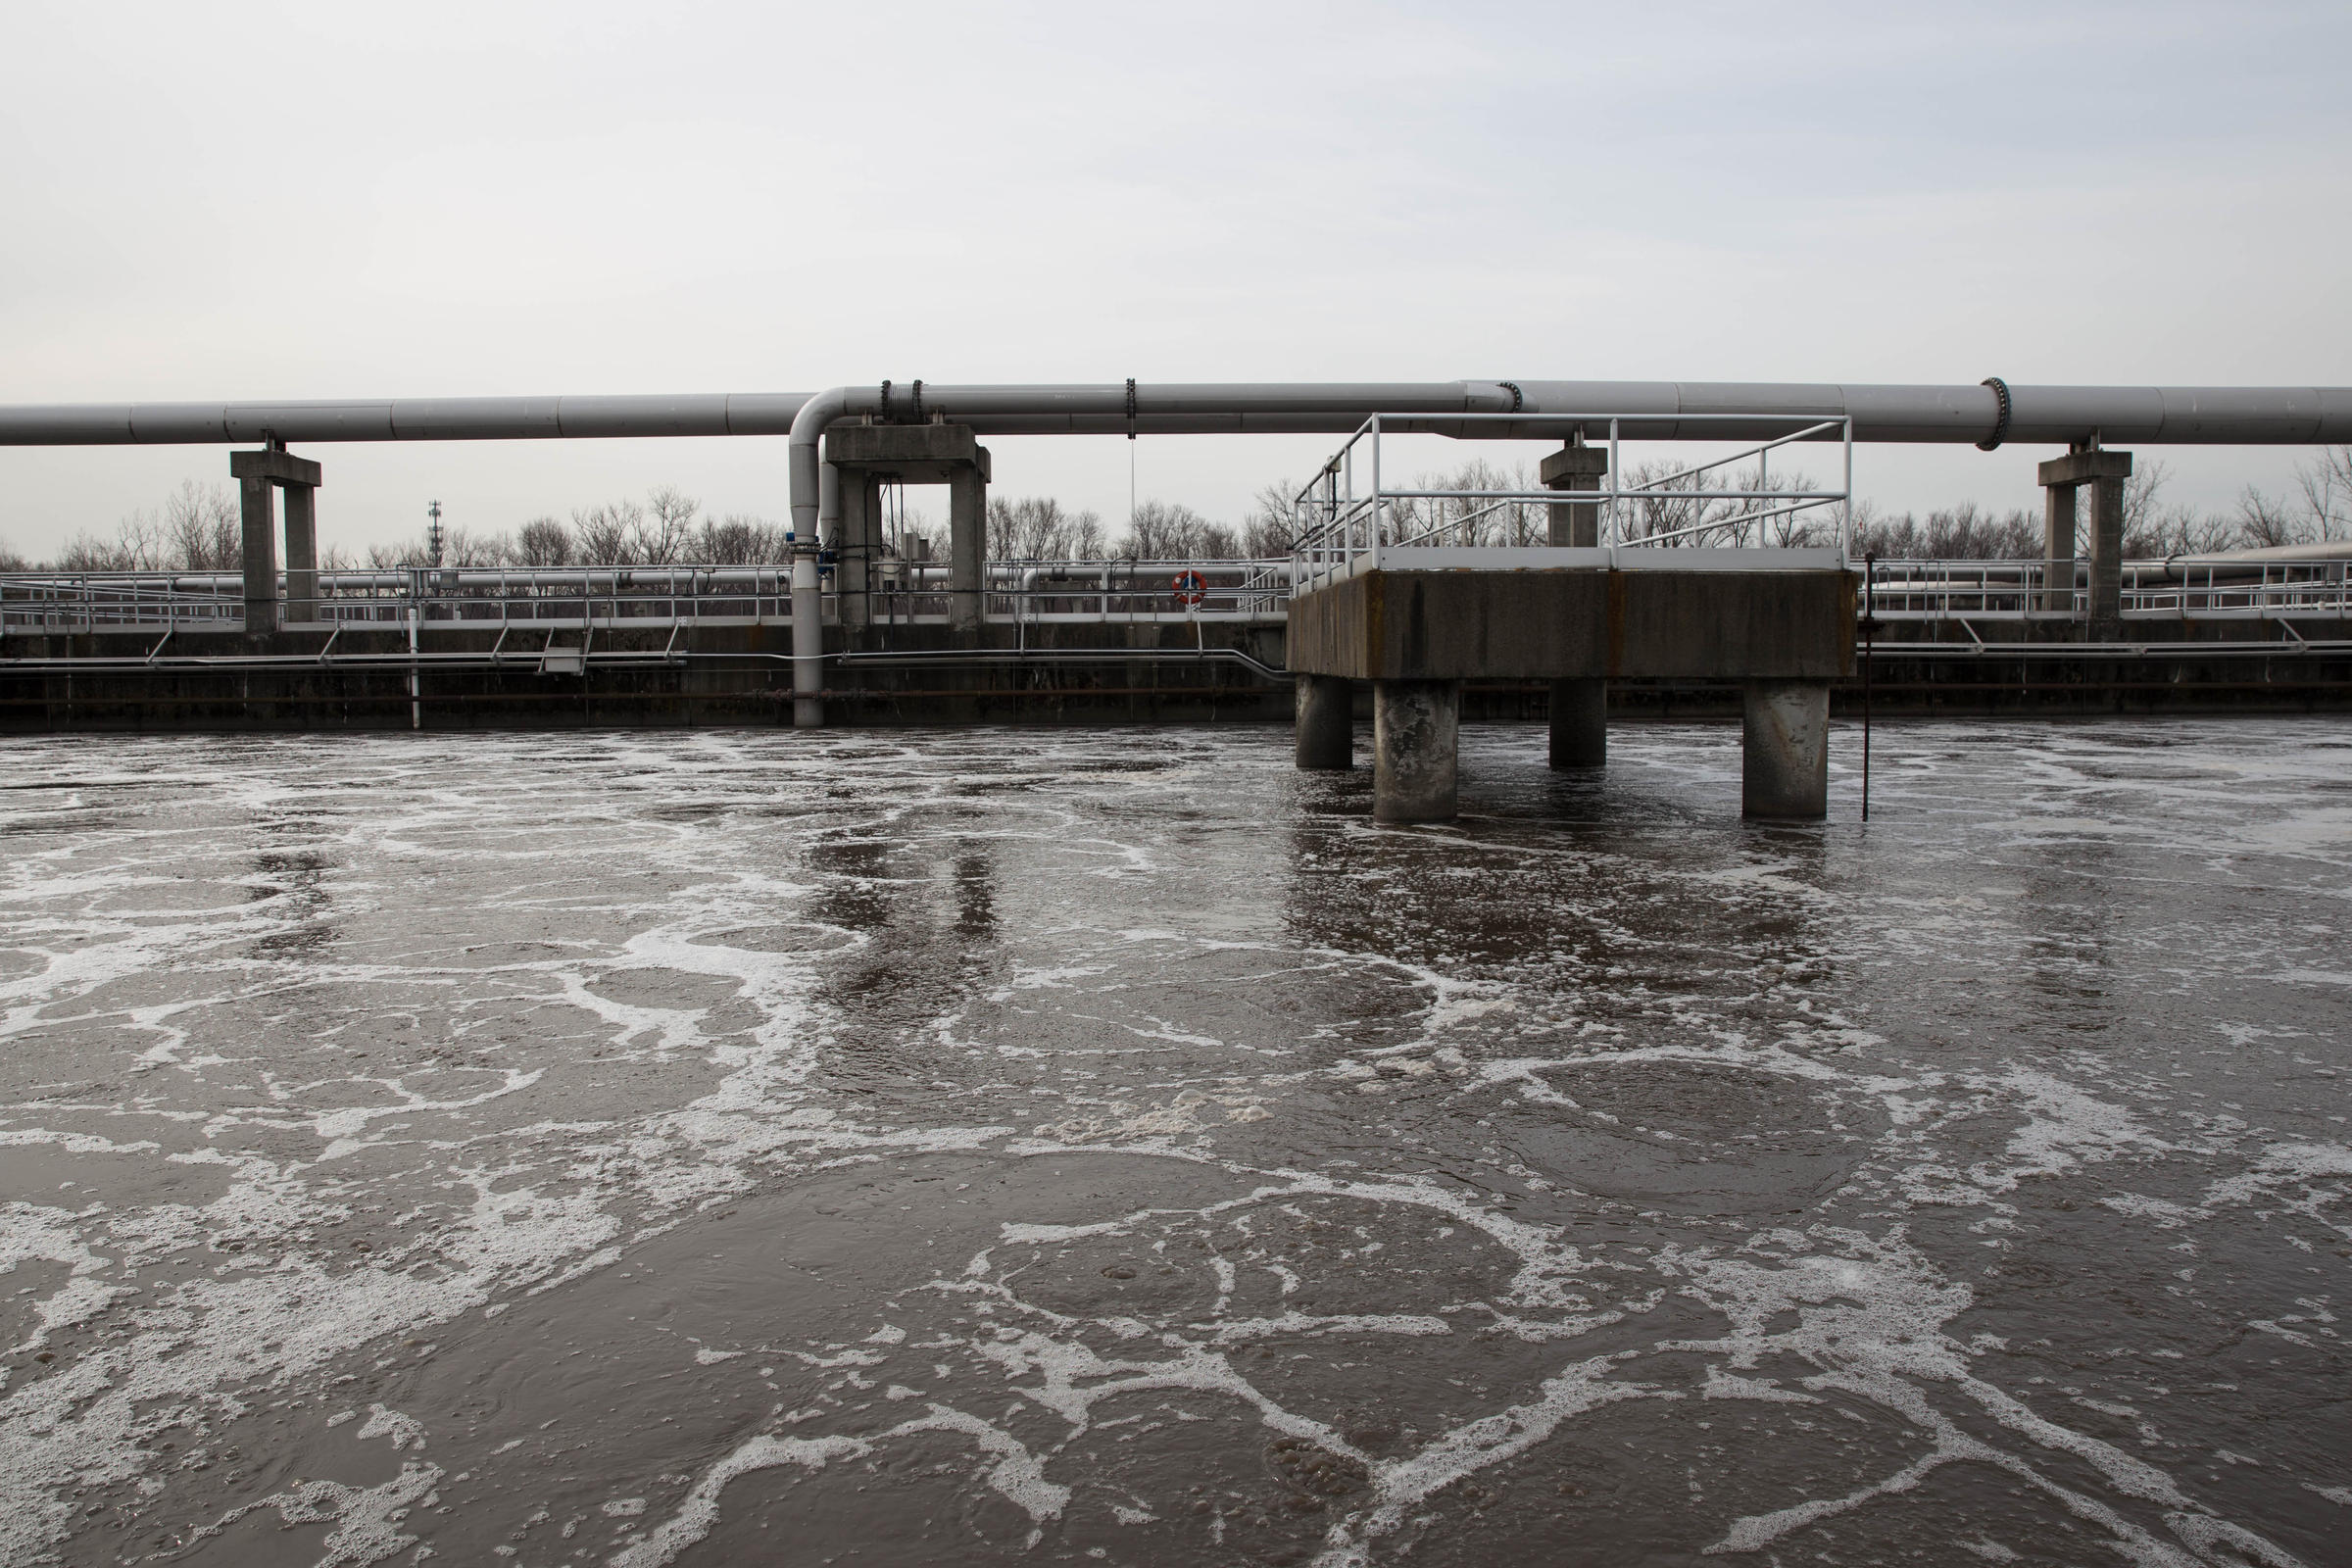 Epa will soon issue years overdue permit to springfield mass the activated sludge system the heart of the water treatment plant at springfield water and sewer where wastewater is treated before going into the sciox Gallery